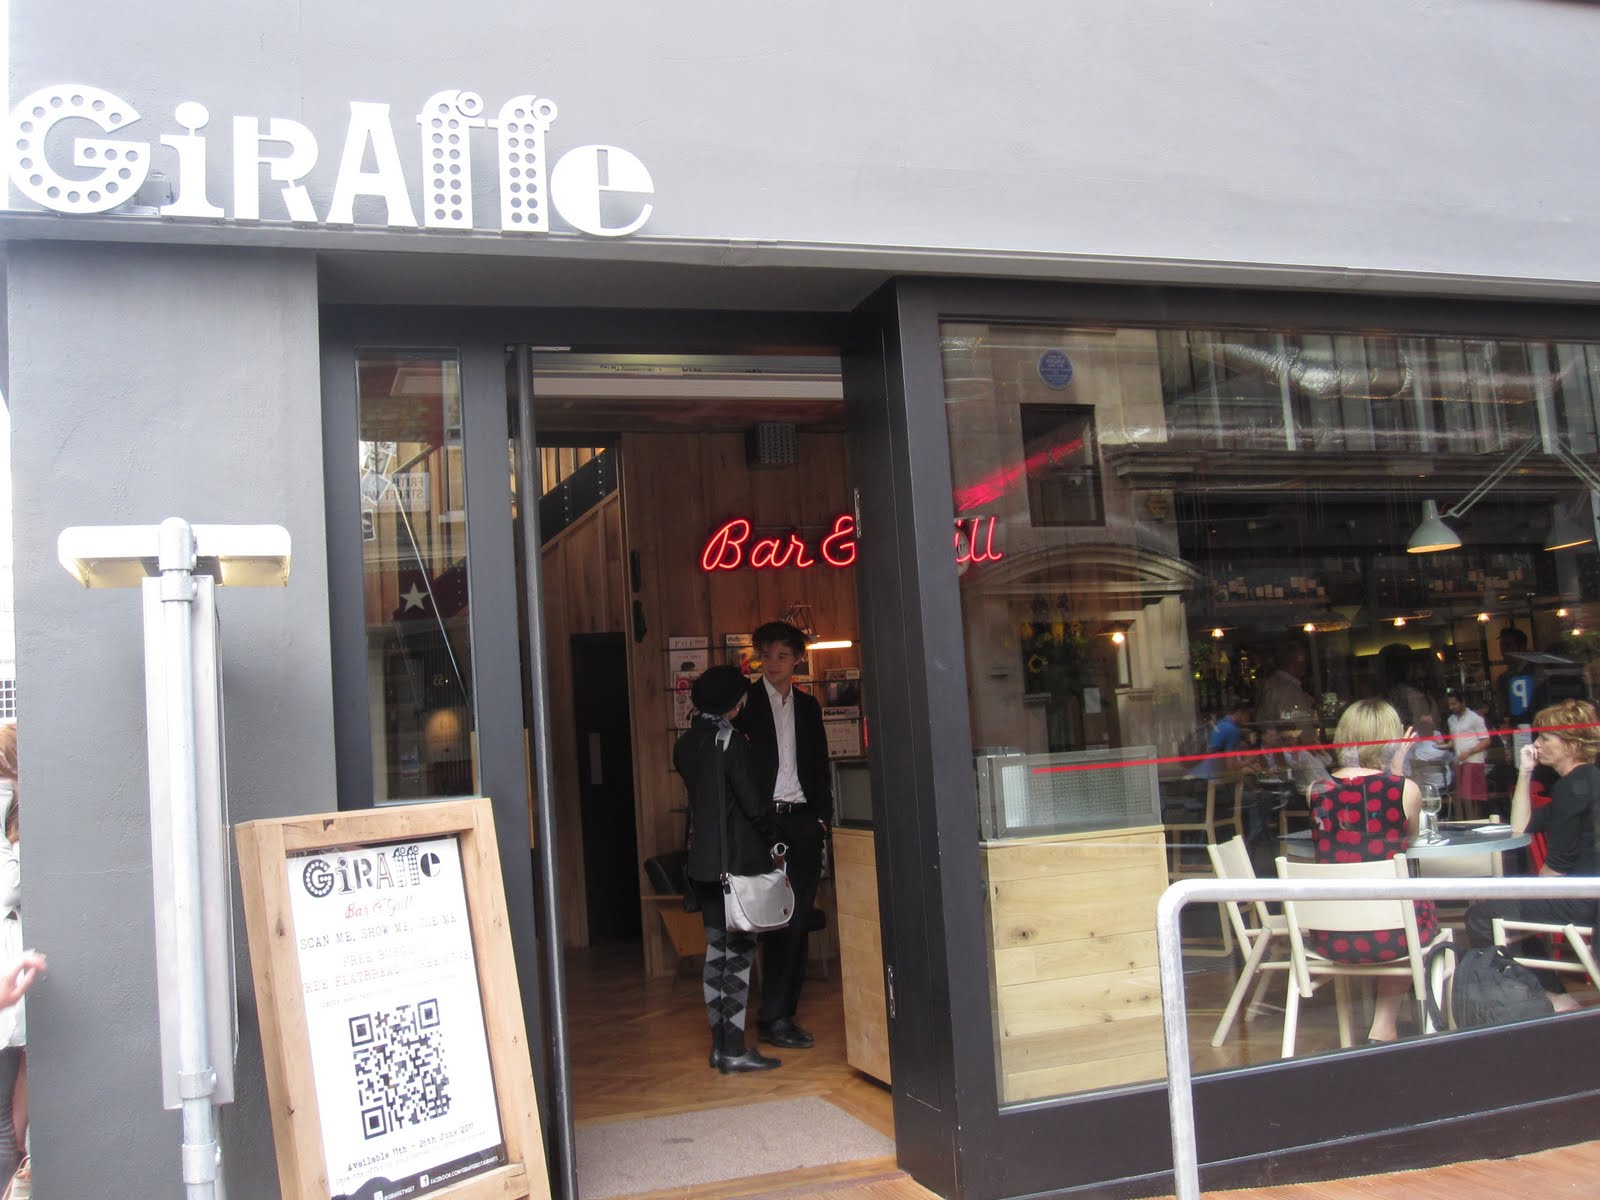 Giraffe restaurant london for Food bar giraffe